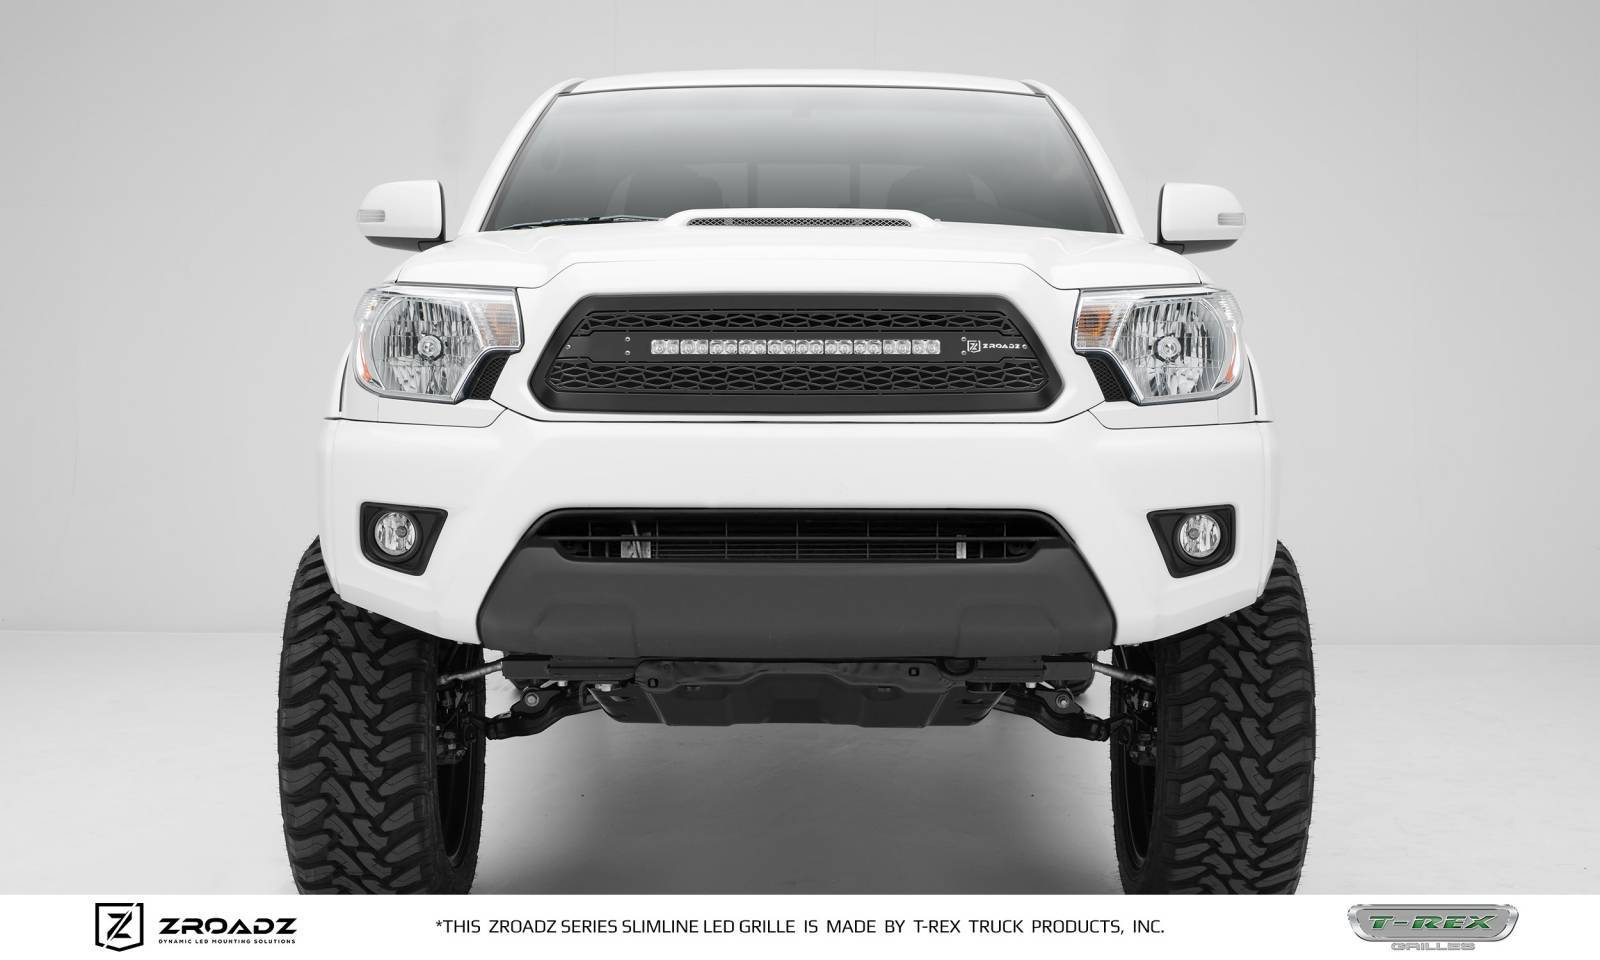 Toyota Tacoma - ZROADZ Series - Main Insert - Grille w/ One 20 Inch Slim Line Single Row LED Light Bar - Includes Universal Wiring Harness - Part# Z319381